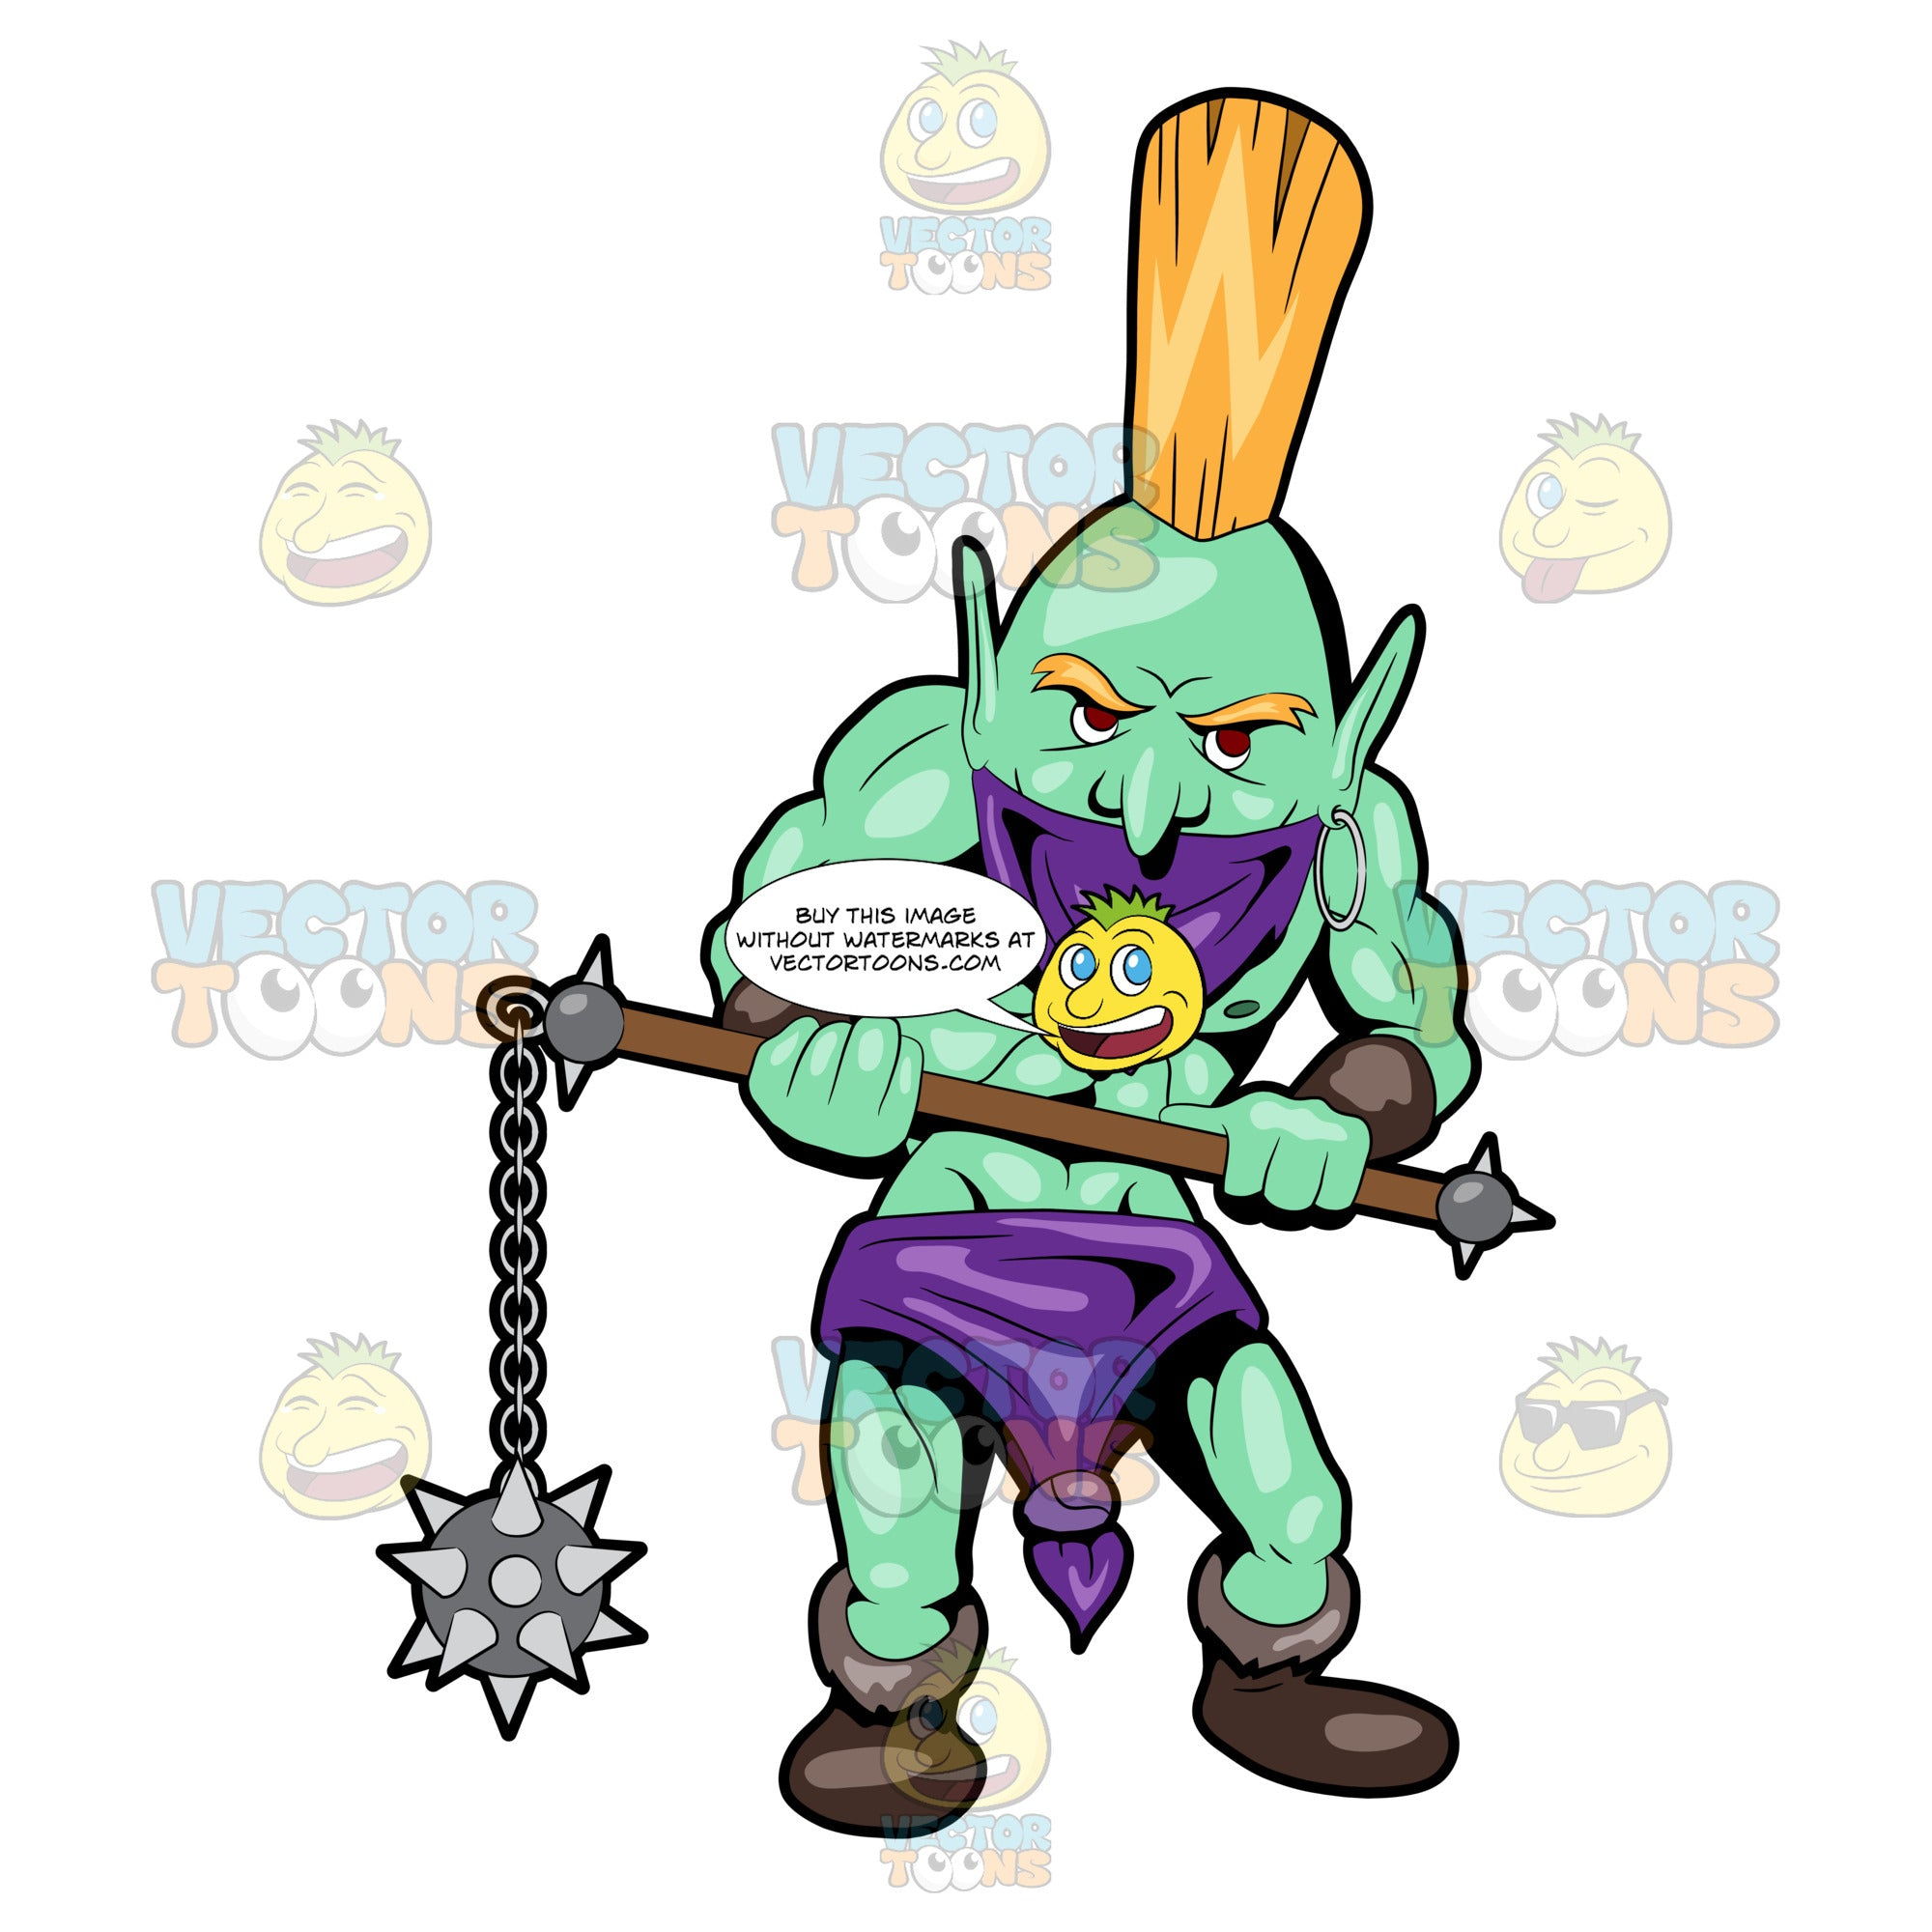 A Troll Warrior With His Spiked Mace